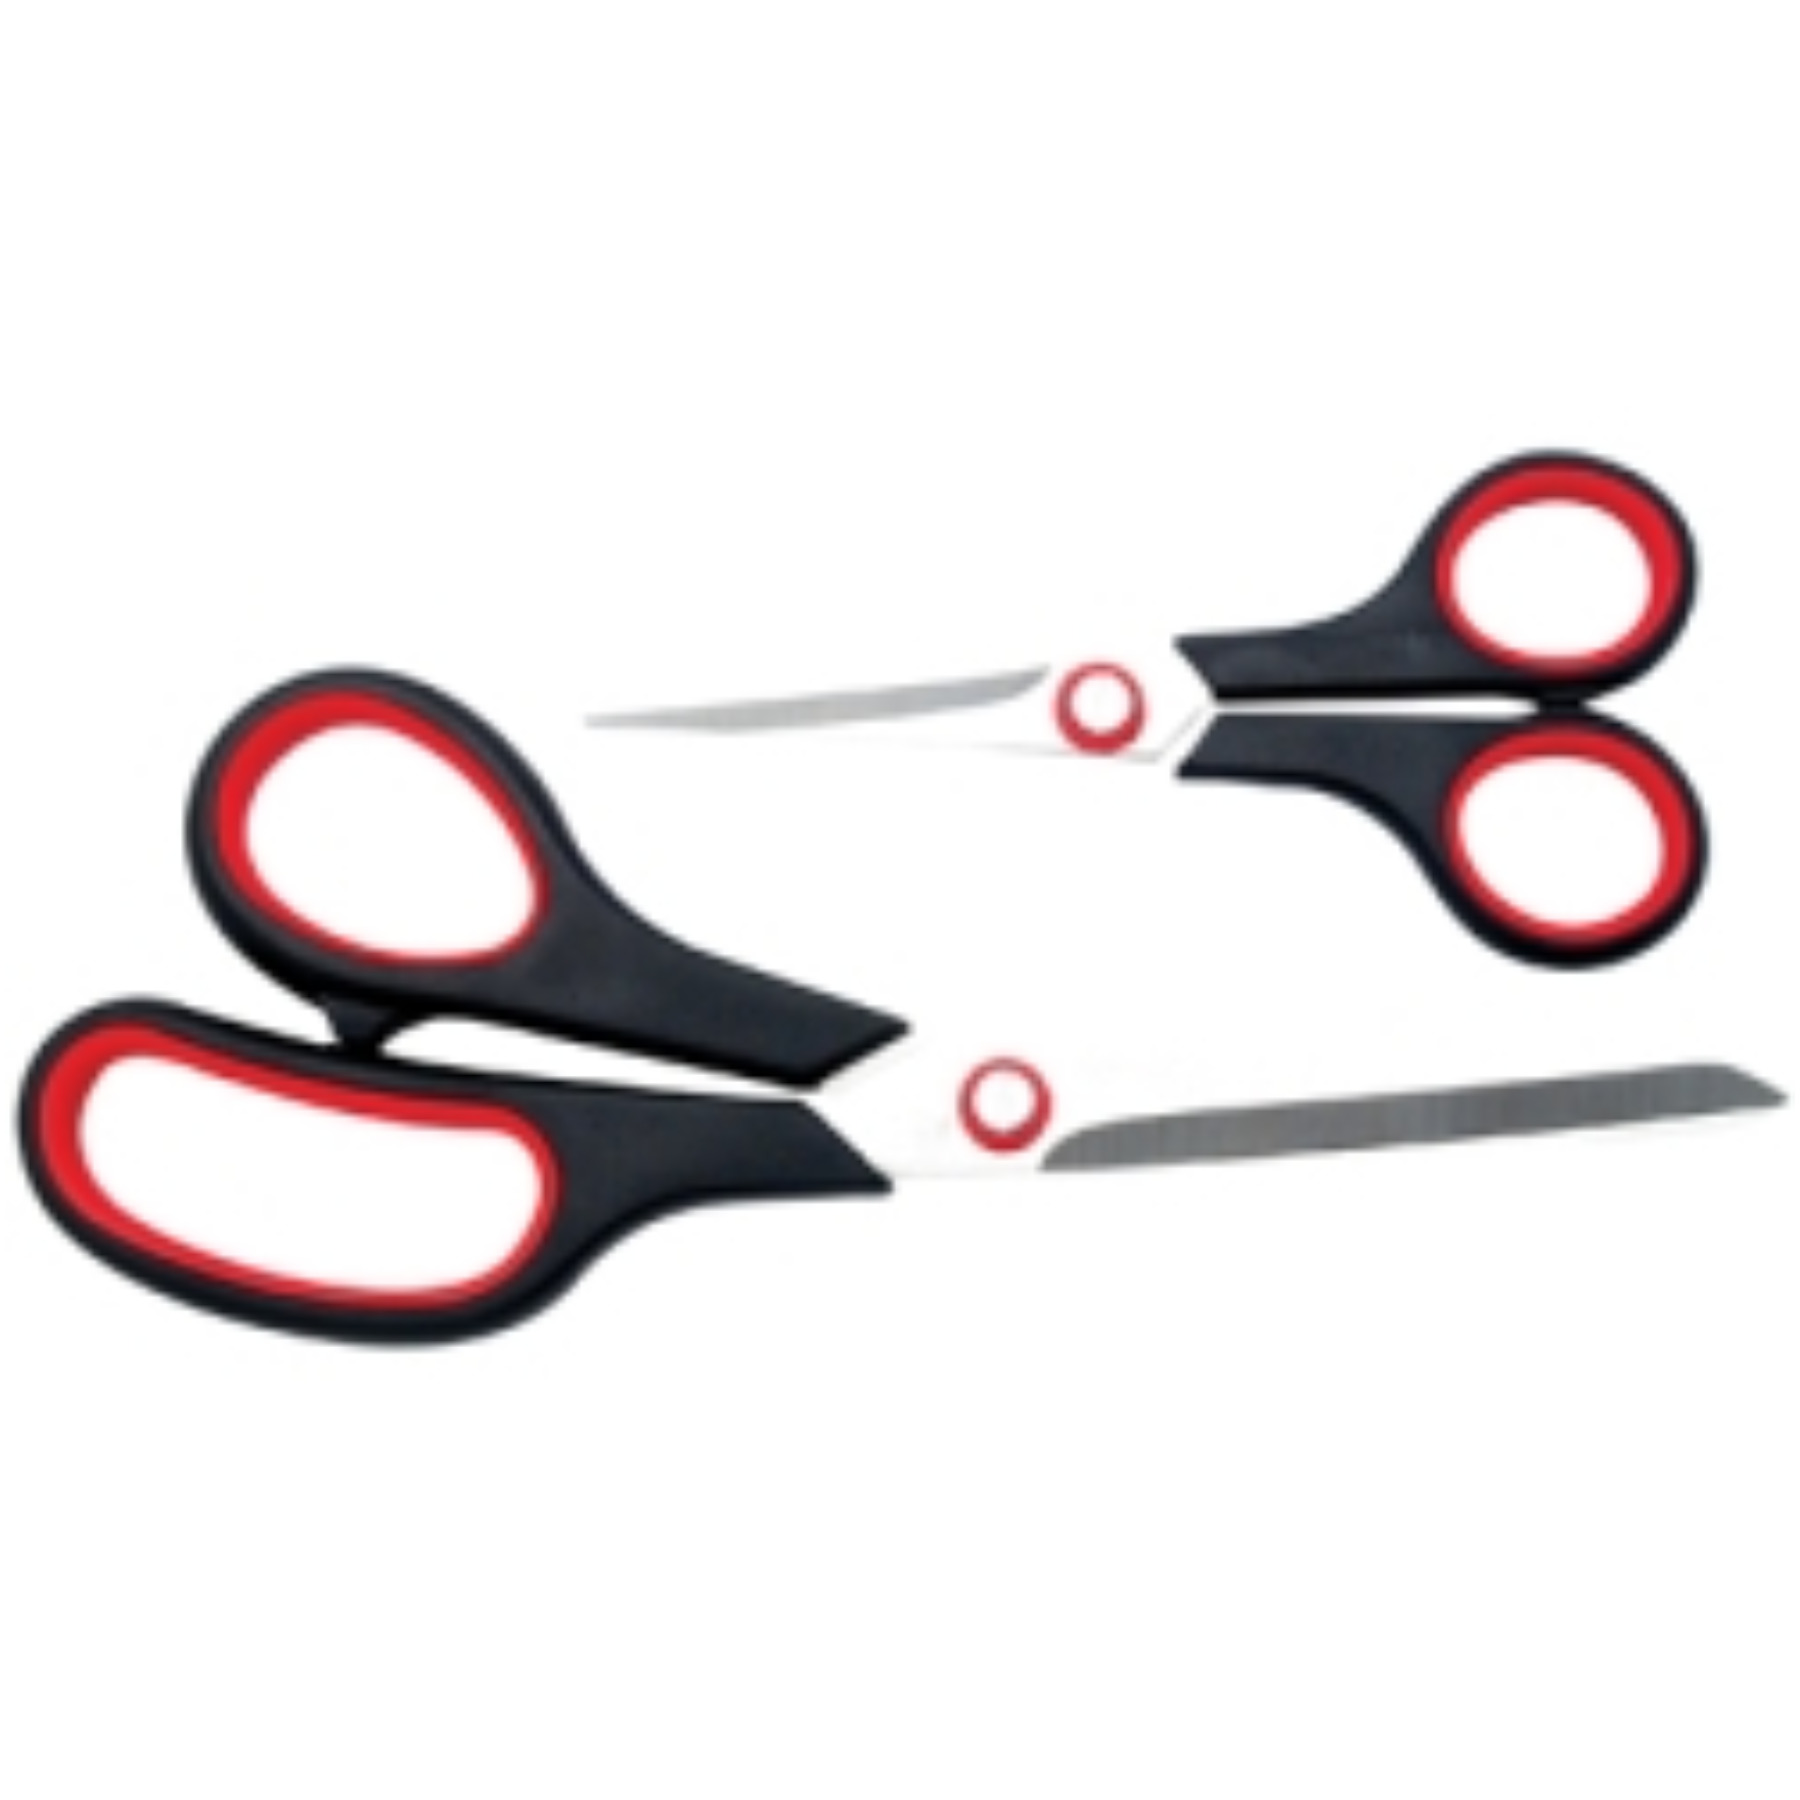 2 PC SCISSORS SET